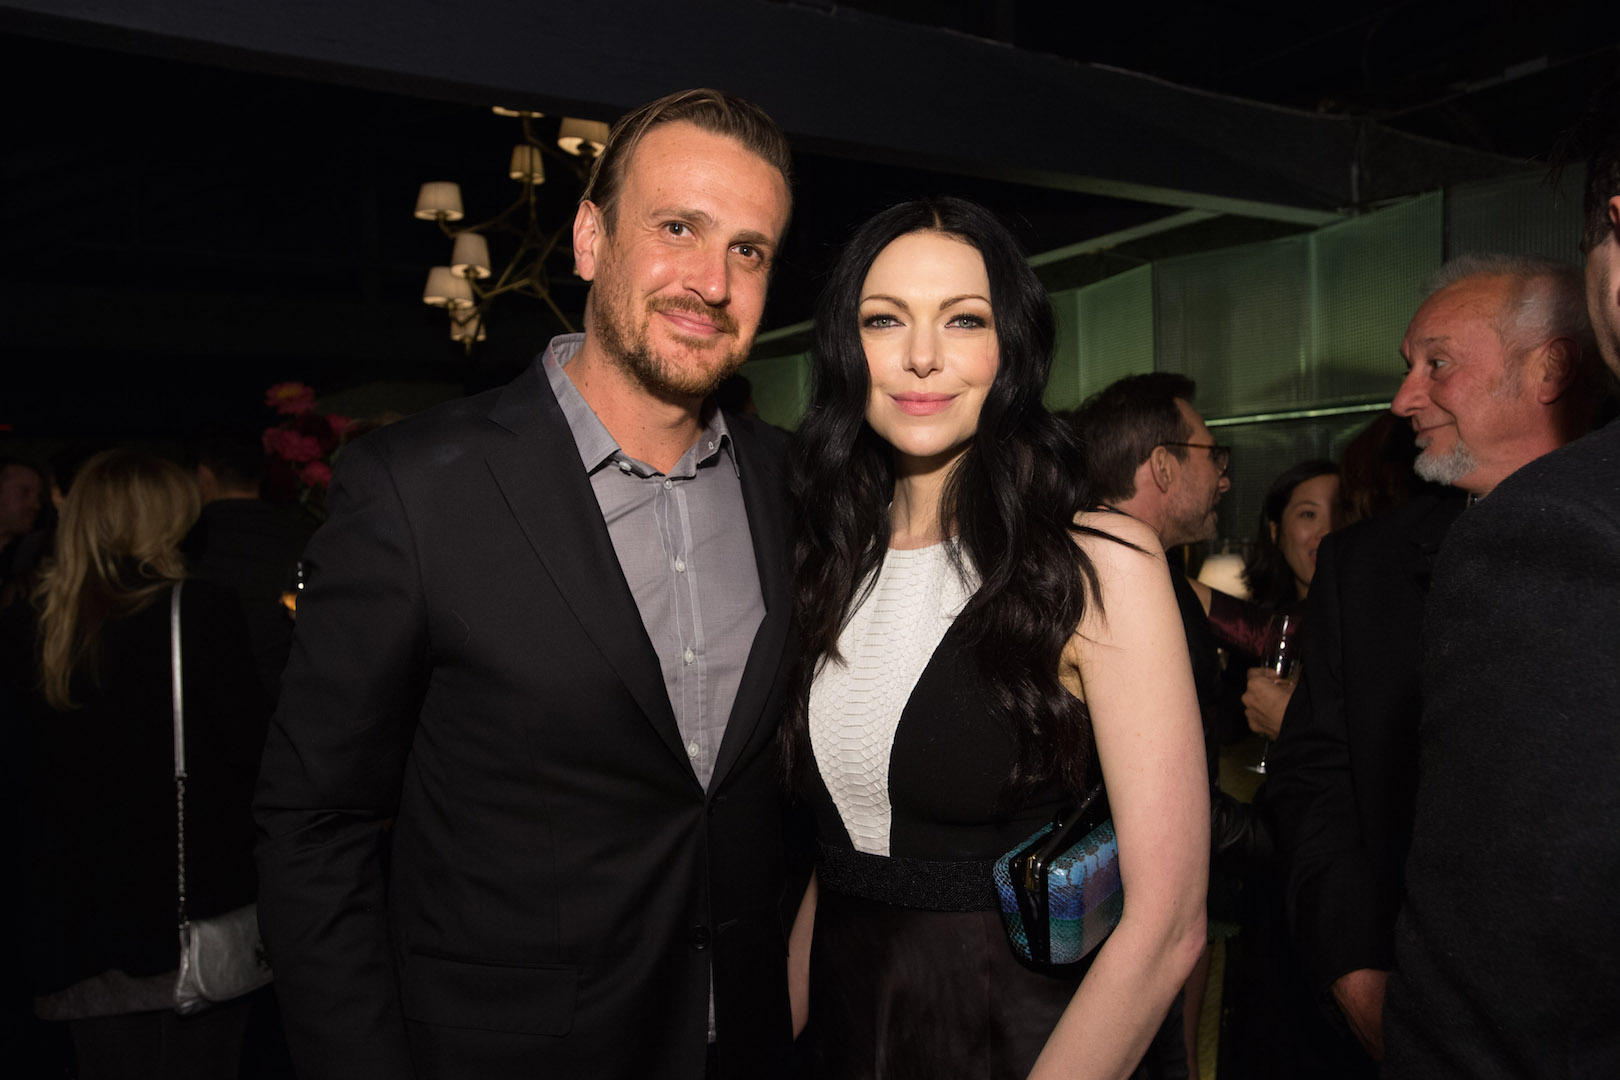 Jason Segel and Laura Prepon attend a party for the announcement of Corinne Foxx as Miss Golden Globe 2016 for the 73rd Annual Golden Globe Awards set to air live on NBC on January 10, 2016.  President Lorenzo Soria made the announcement on November 17, 2015 from Ysabel Restaurant in West Hollywood.